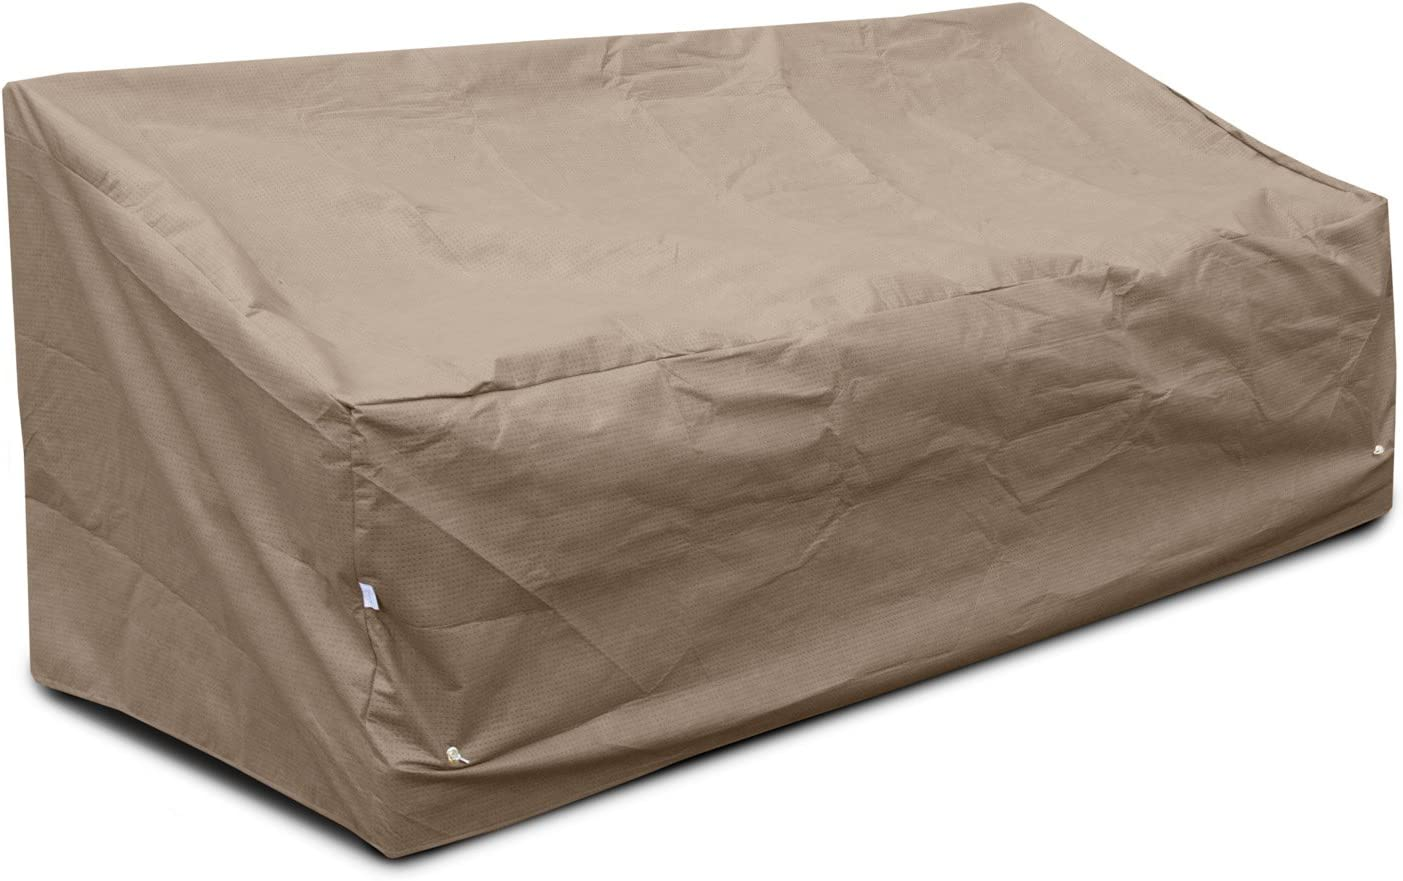 KoverRoos III 39355 Deep Large Sofa Cover, 87-Inch Width by 40-Inch Diameter by 31-Inch Height, Taupe